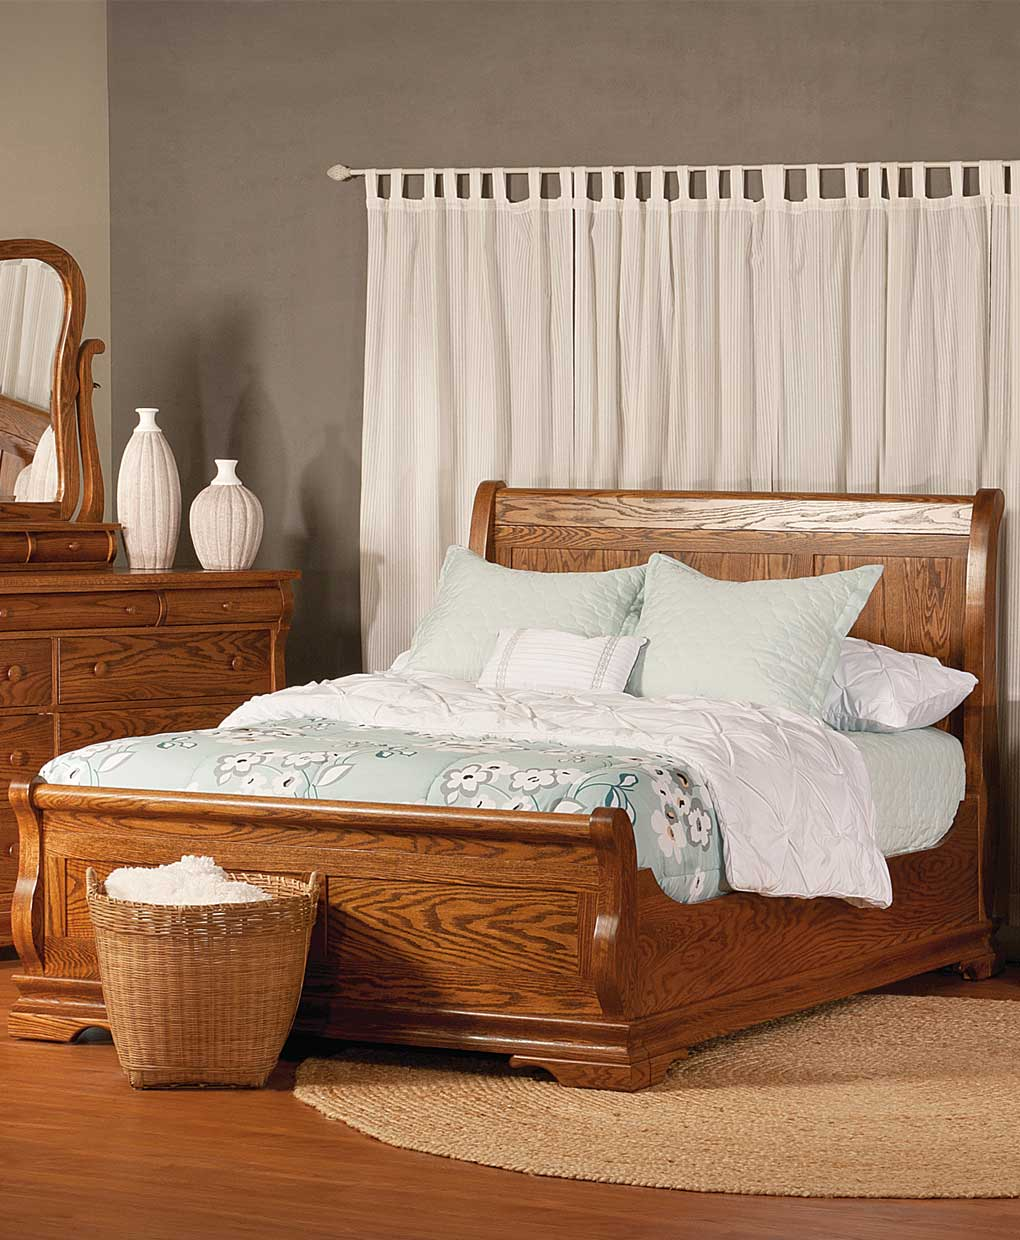 storage s furniture daniel trim bedroom belfort item lewiston bed lewistonqueen amish height threshold queen products width